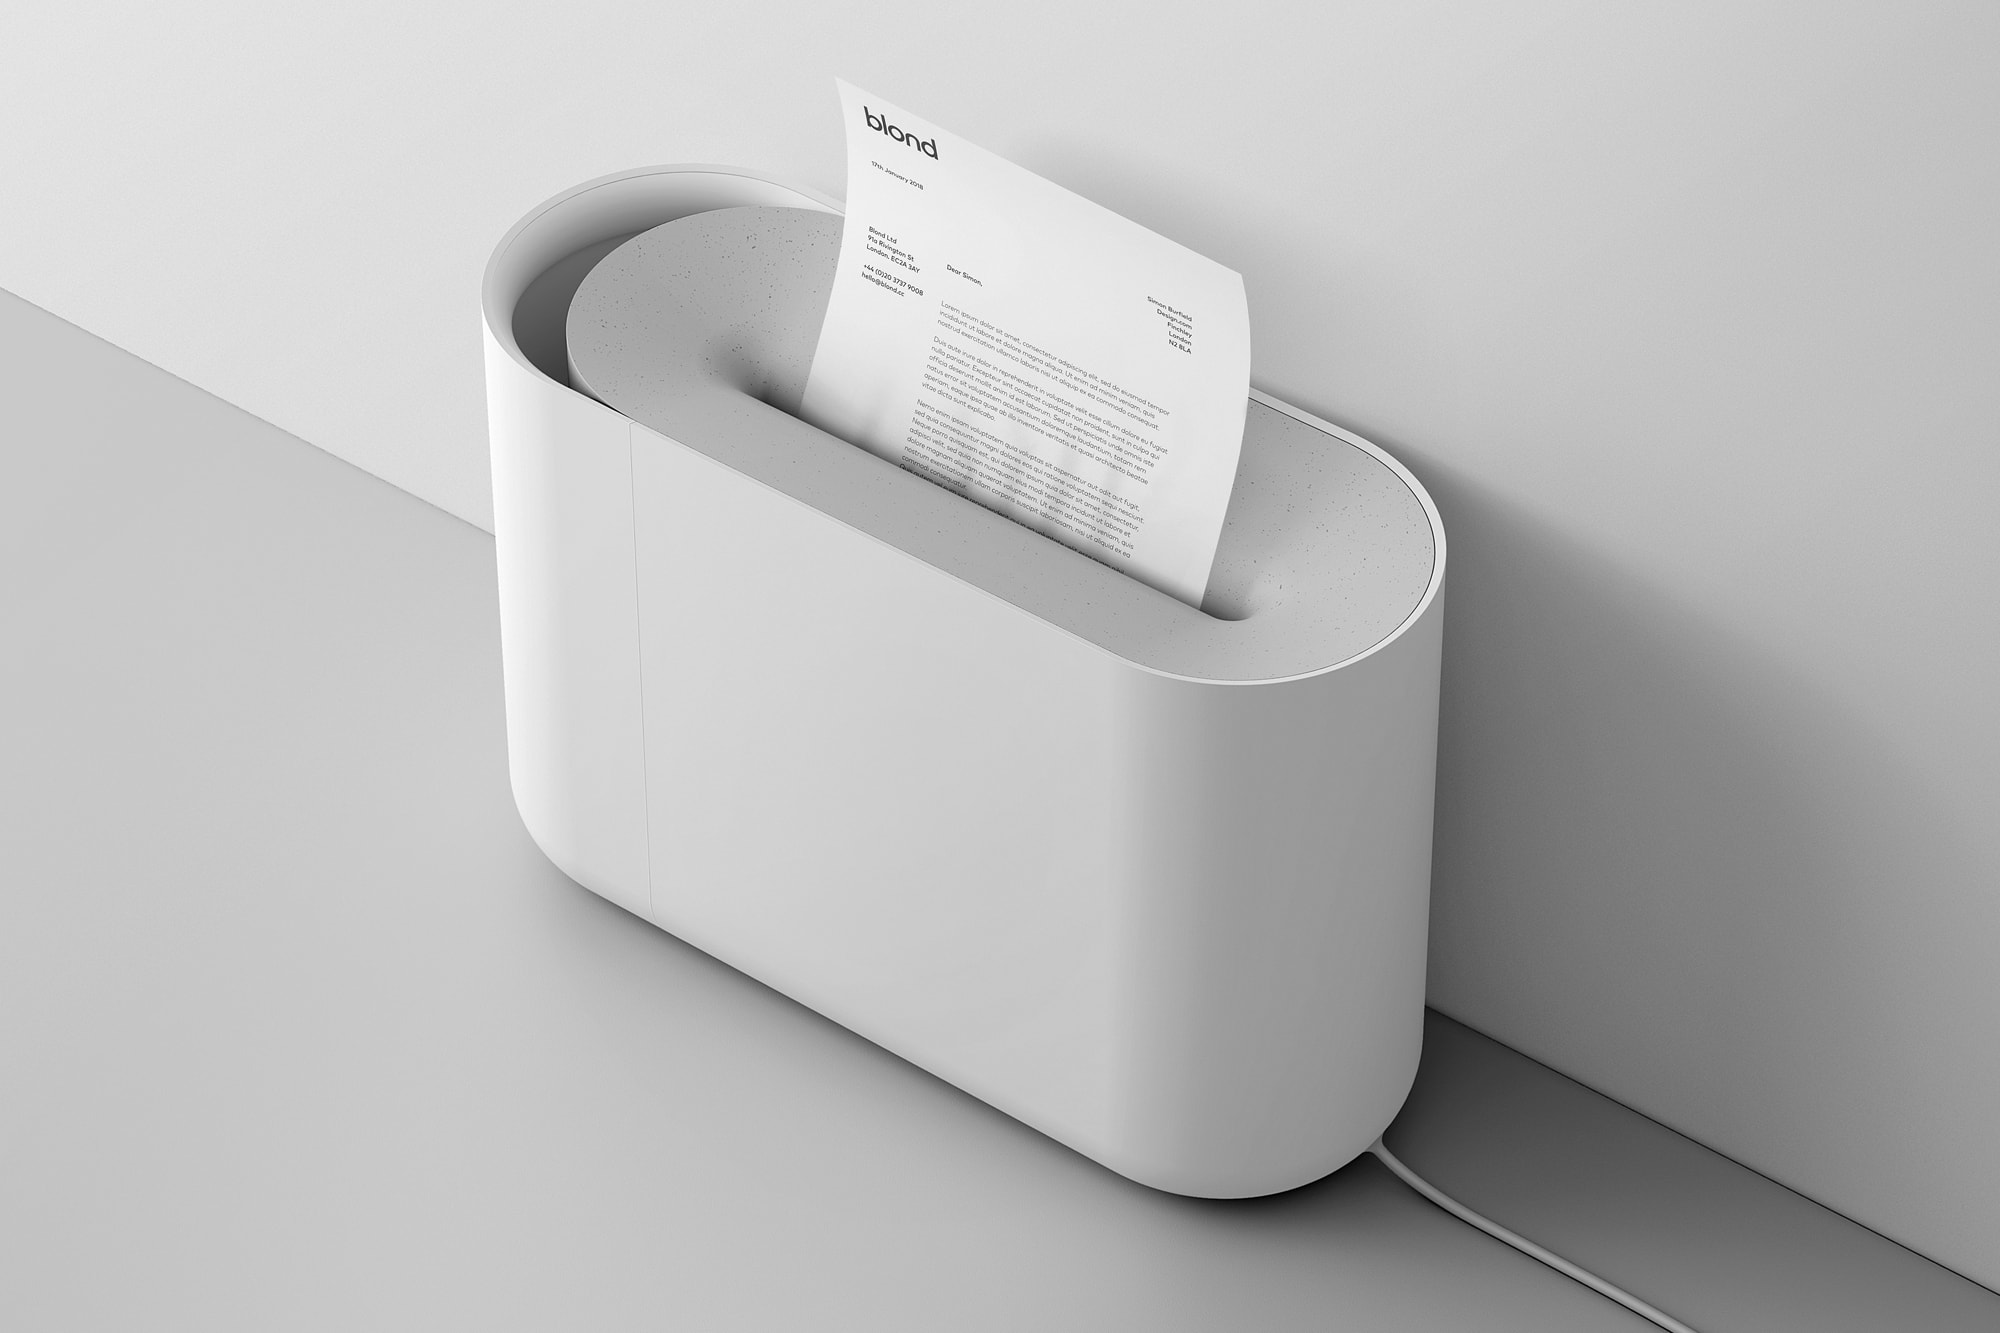 Blond-Industrial-Product-Design-Agency-Studio-London-Paper-Shredder-16